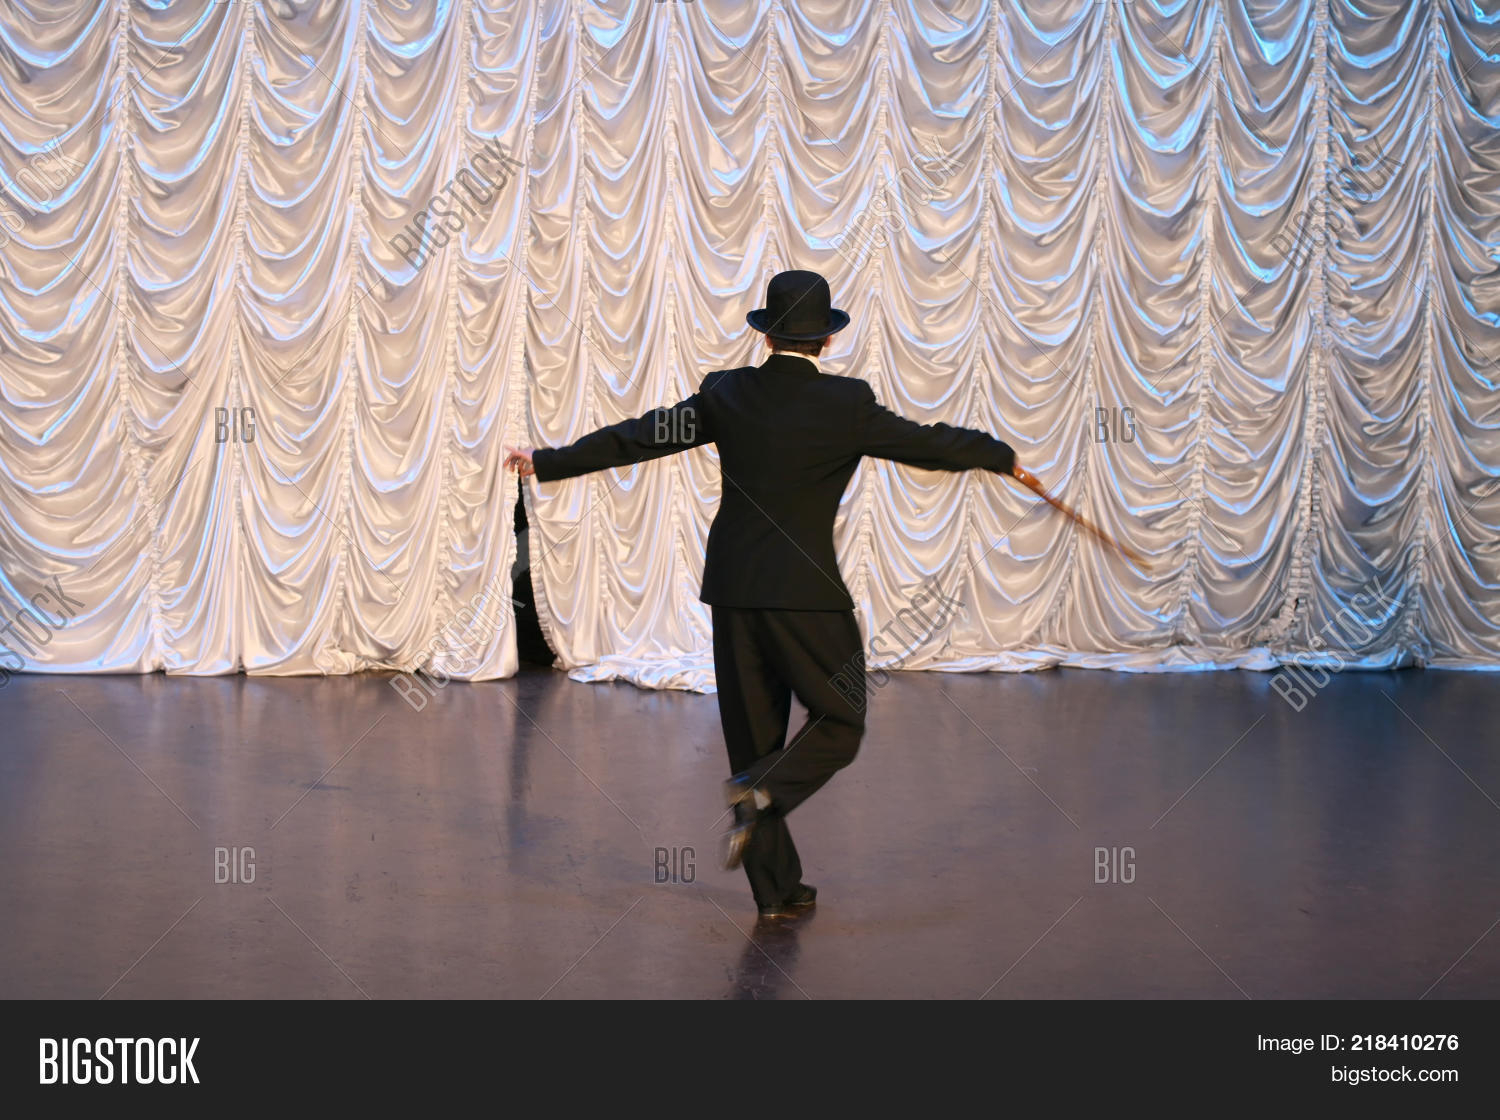 ded36ebe2103 Tap dance with a cane in a black hat. Dance step. A man is